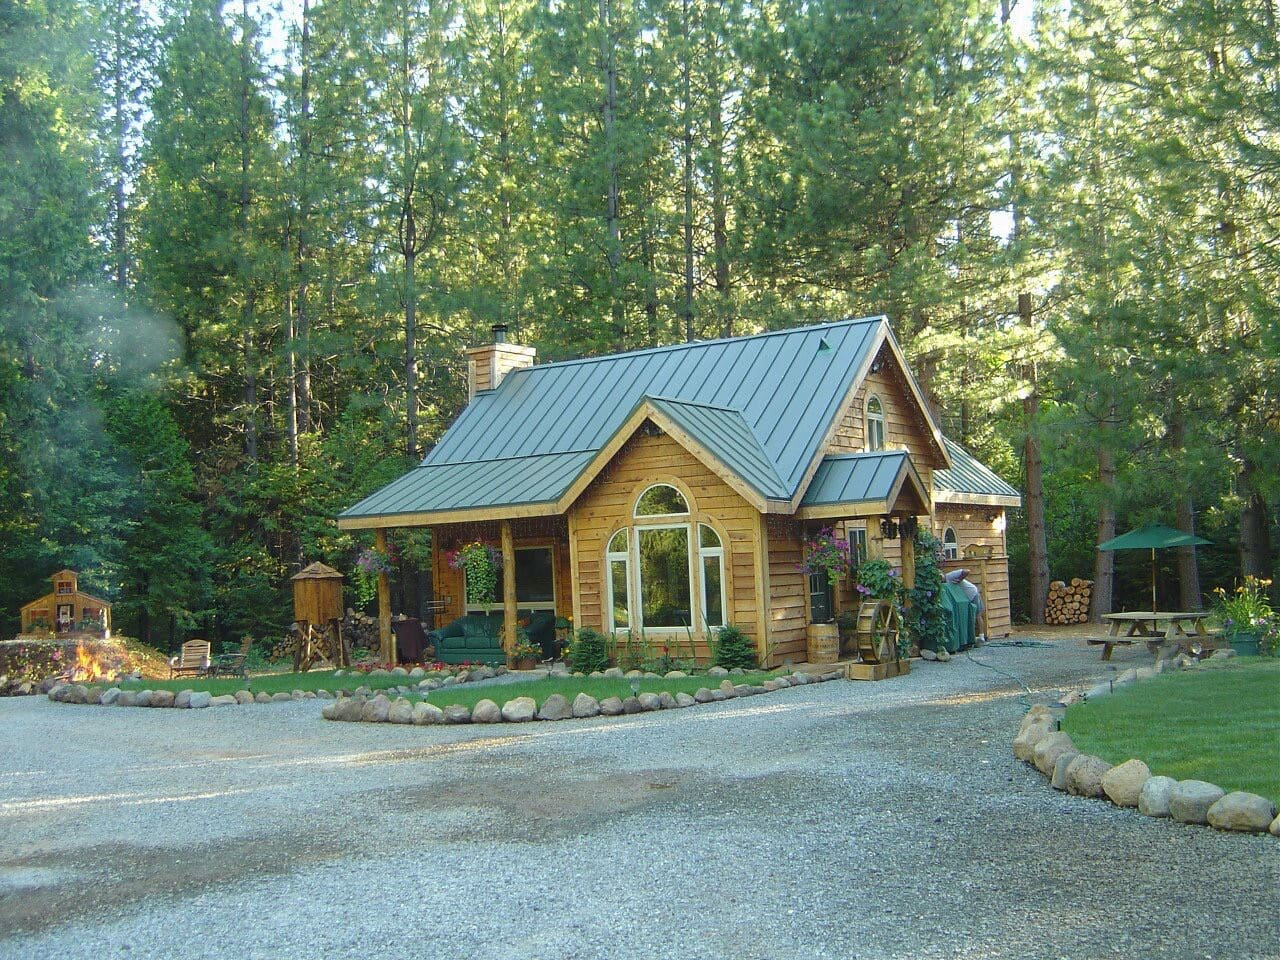 A small acreage with fire pit, trails, a disc golf course and forest loveliness to explore.